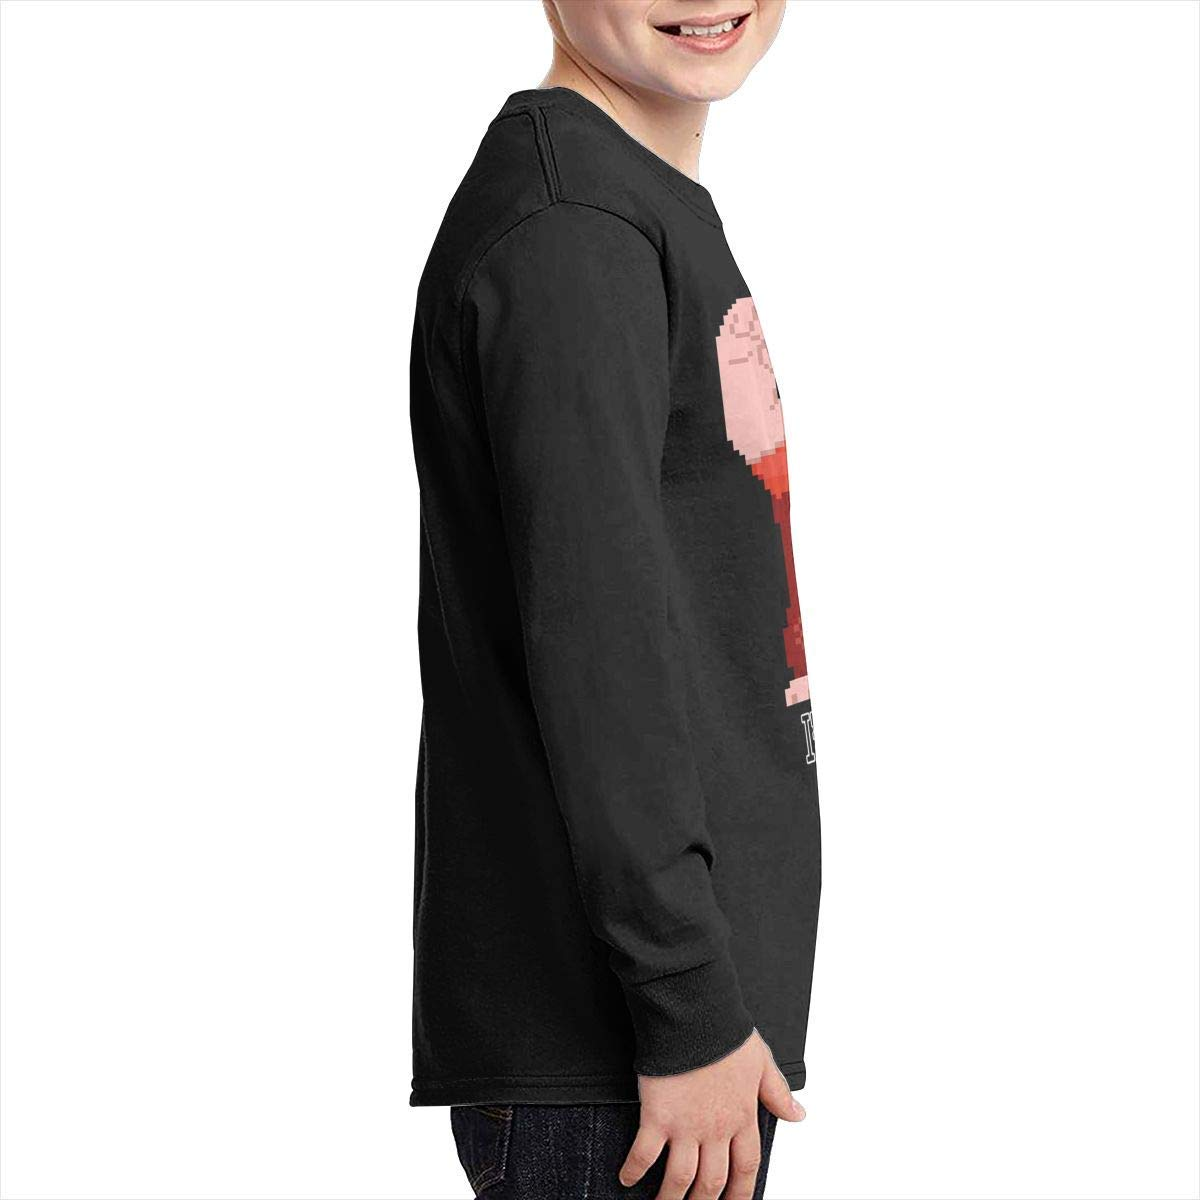 Kilsd Boys /& Girls Junior Classic Wreck It Ralph Long Sleeve T Shirt Black